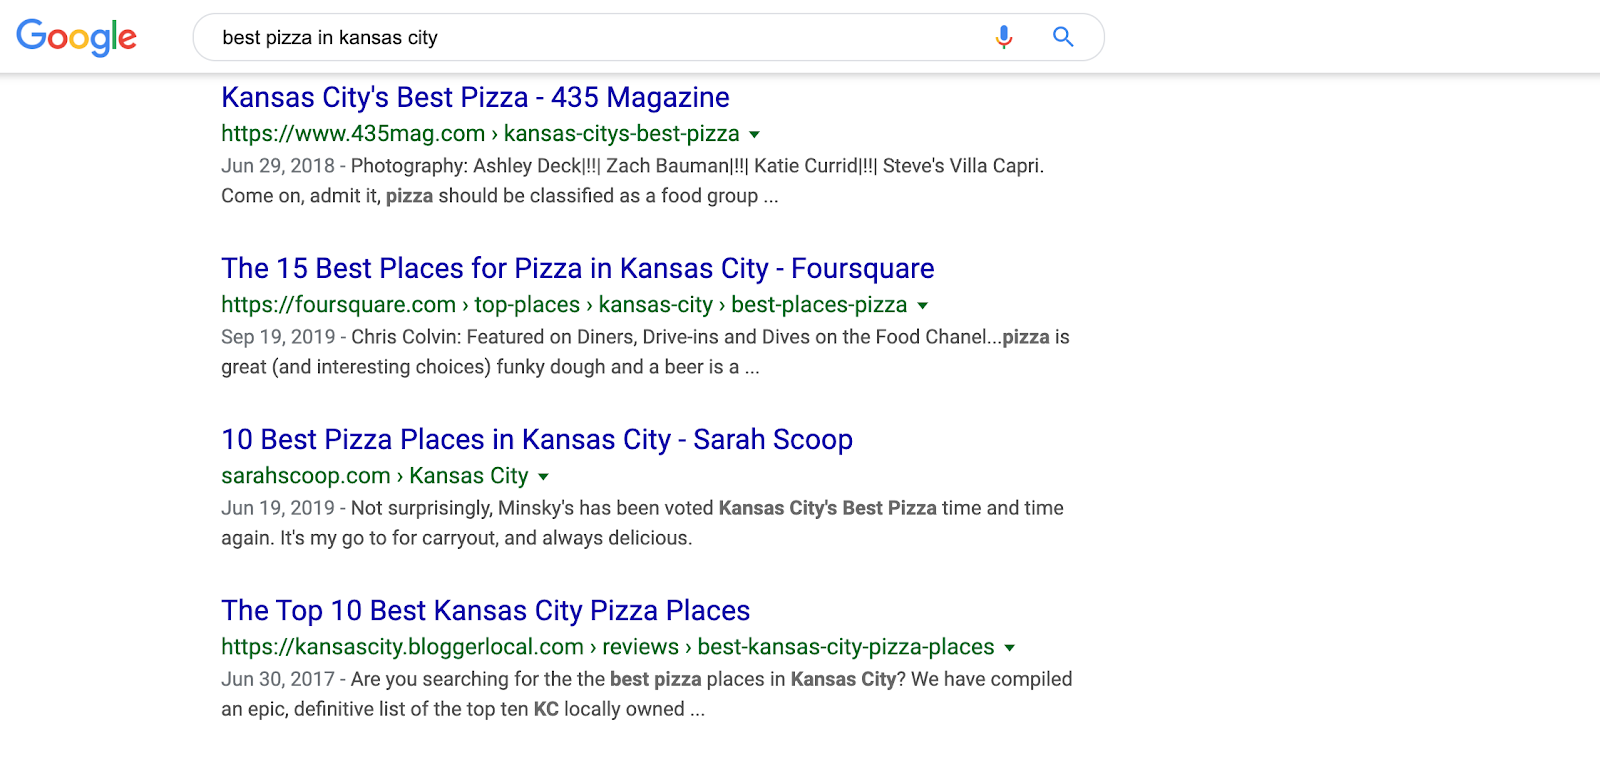 A screenshot of a Google search for the best pizza in Kansas City